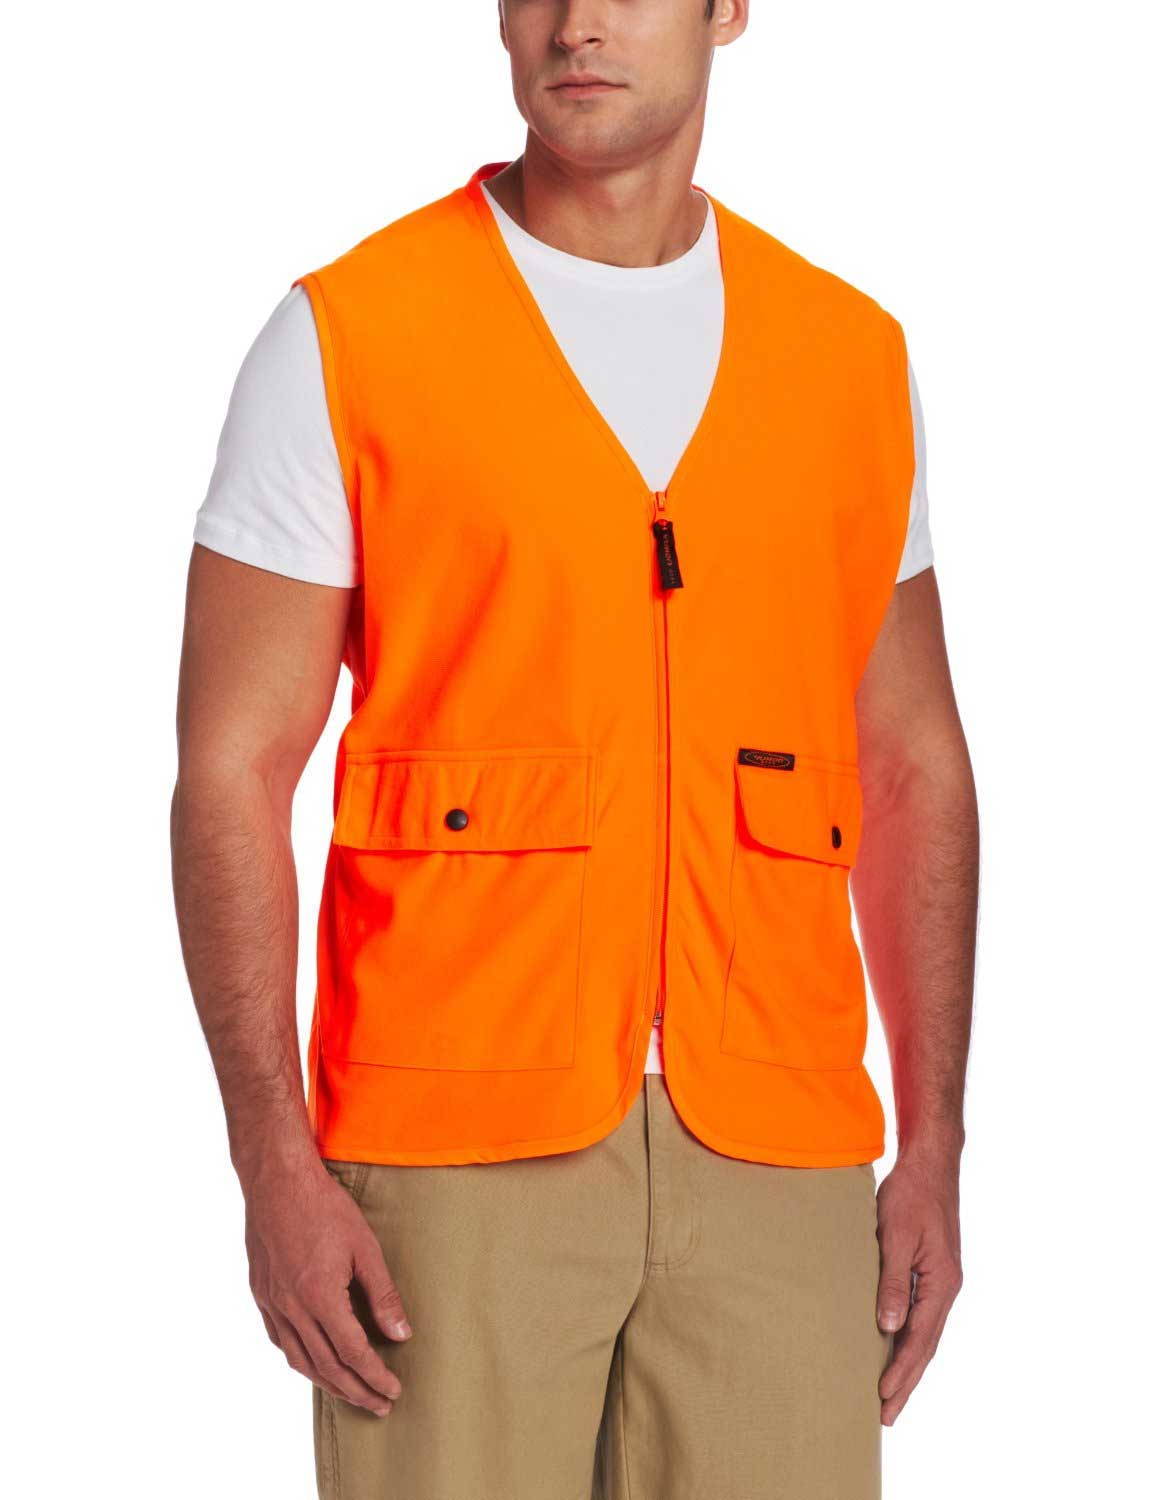 Yukon Gear Field Vest, Blaze Orange_1.jpg